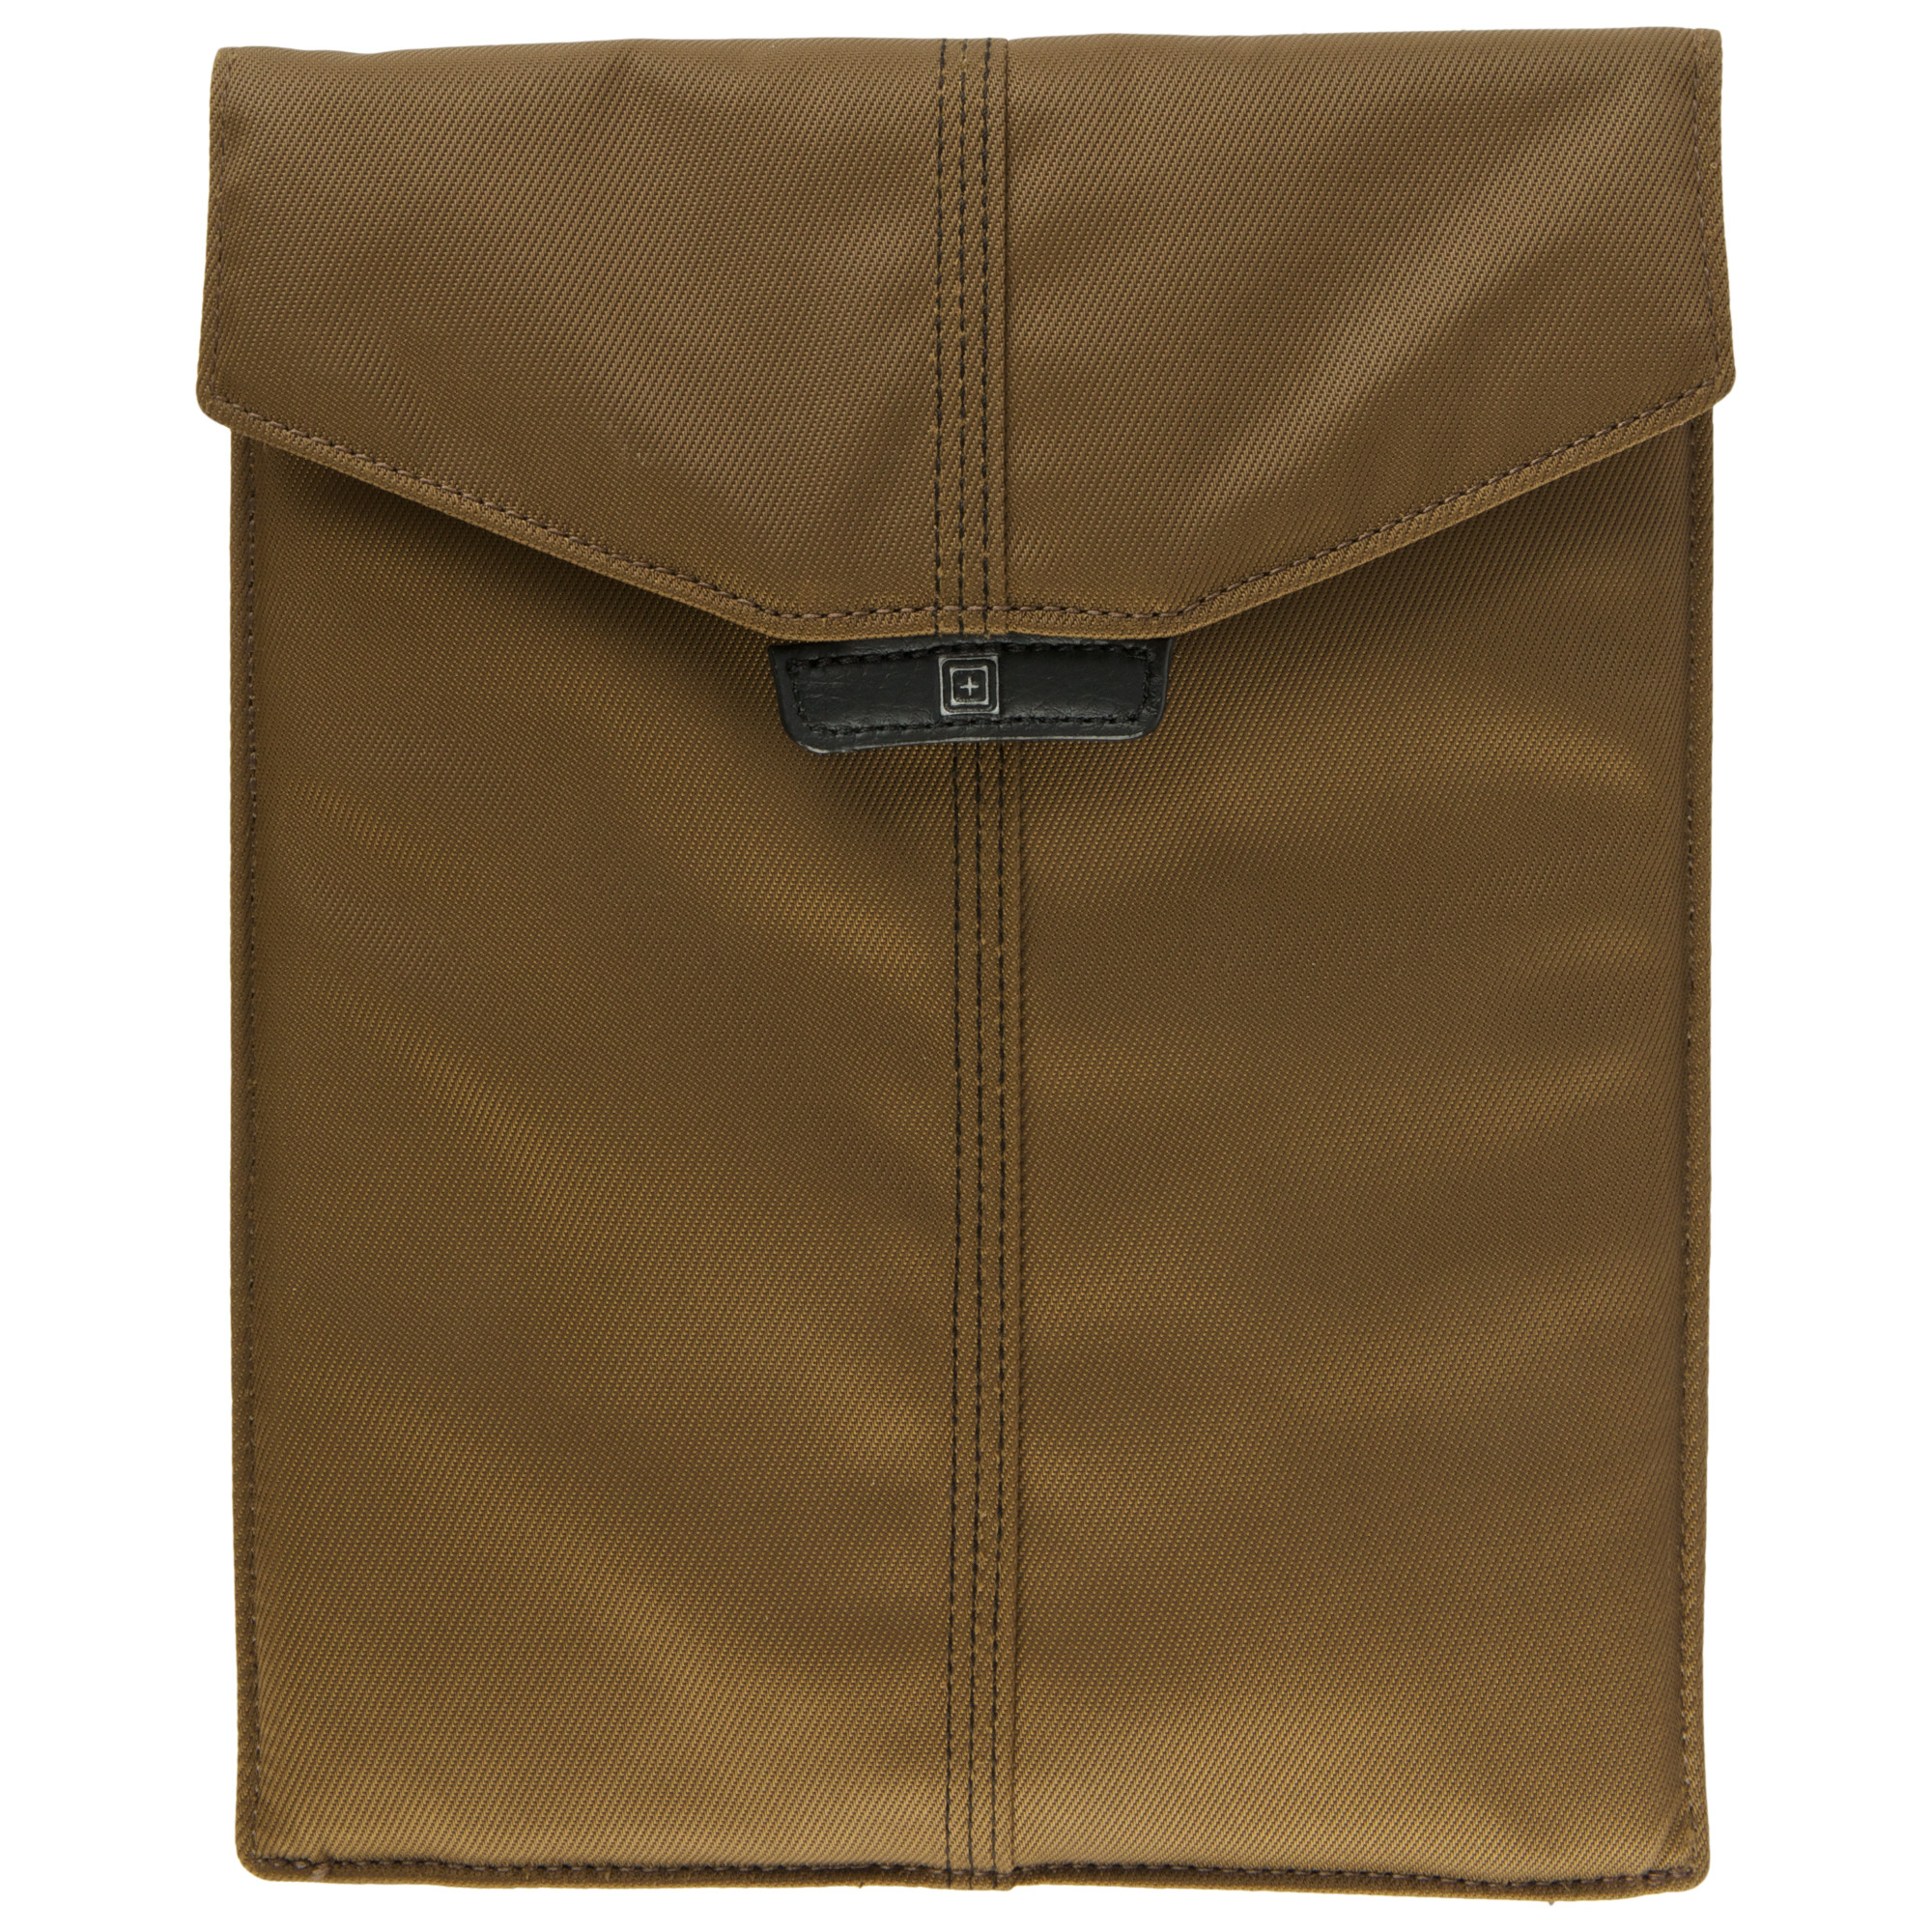 5.11 Tactical Women's Tablet Sleeve (Brown) thumbnail